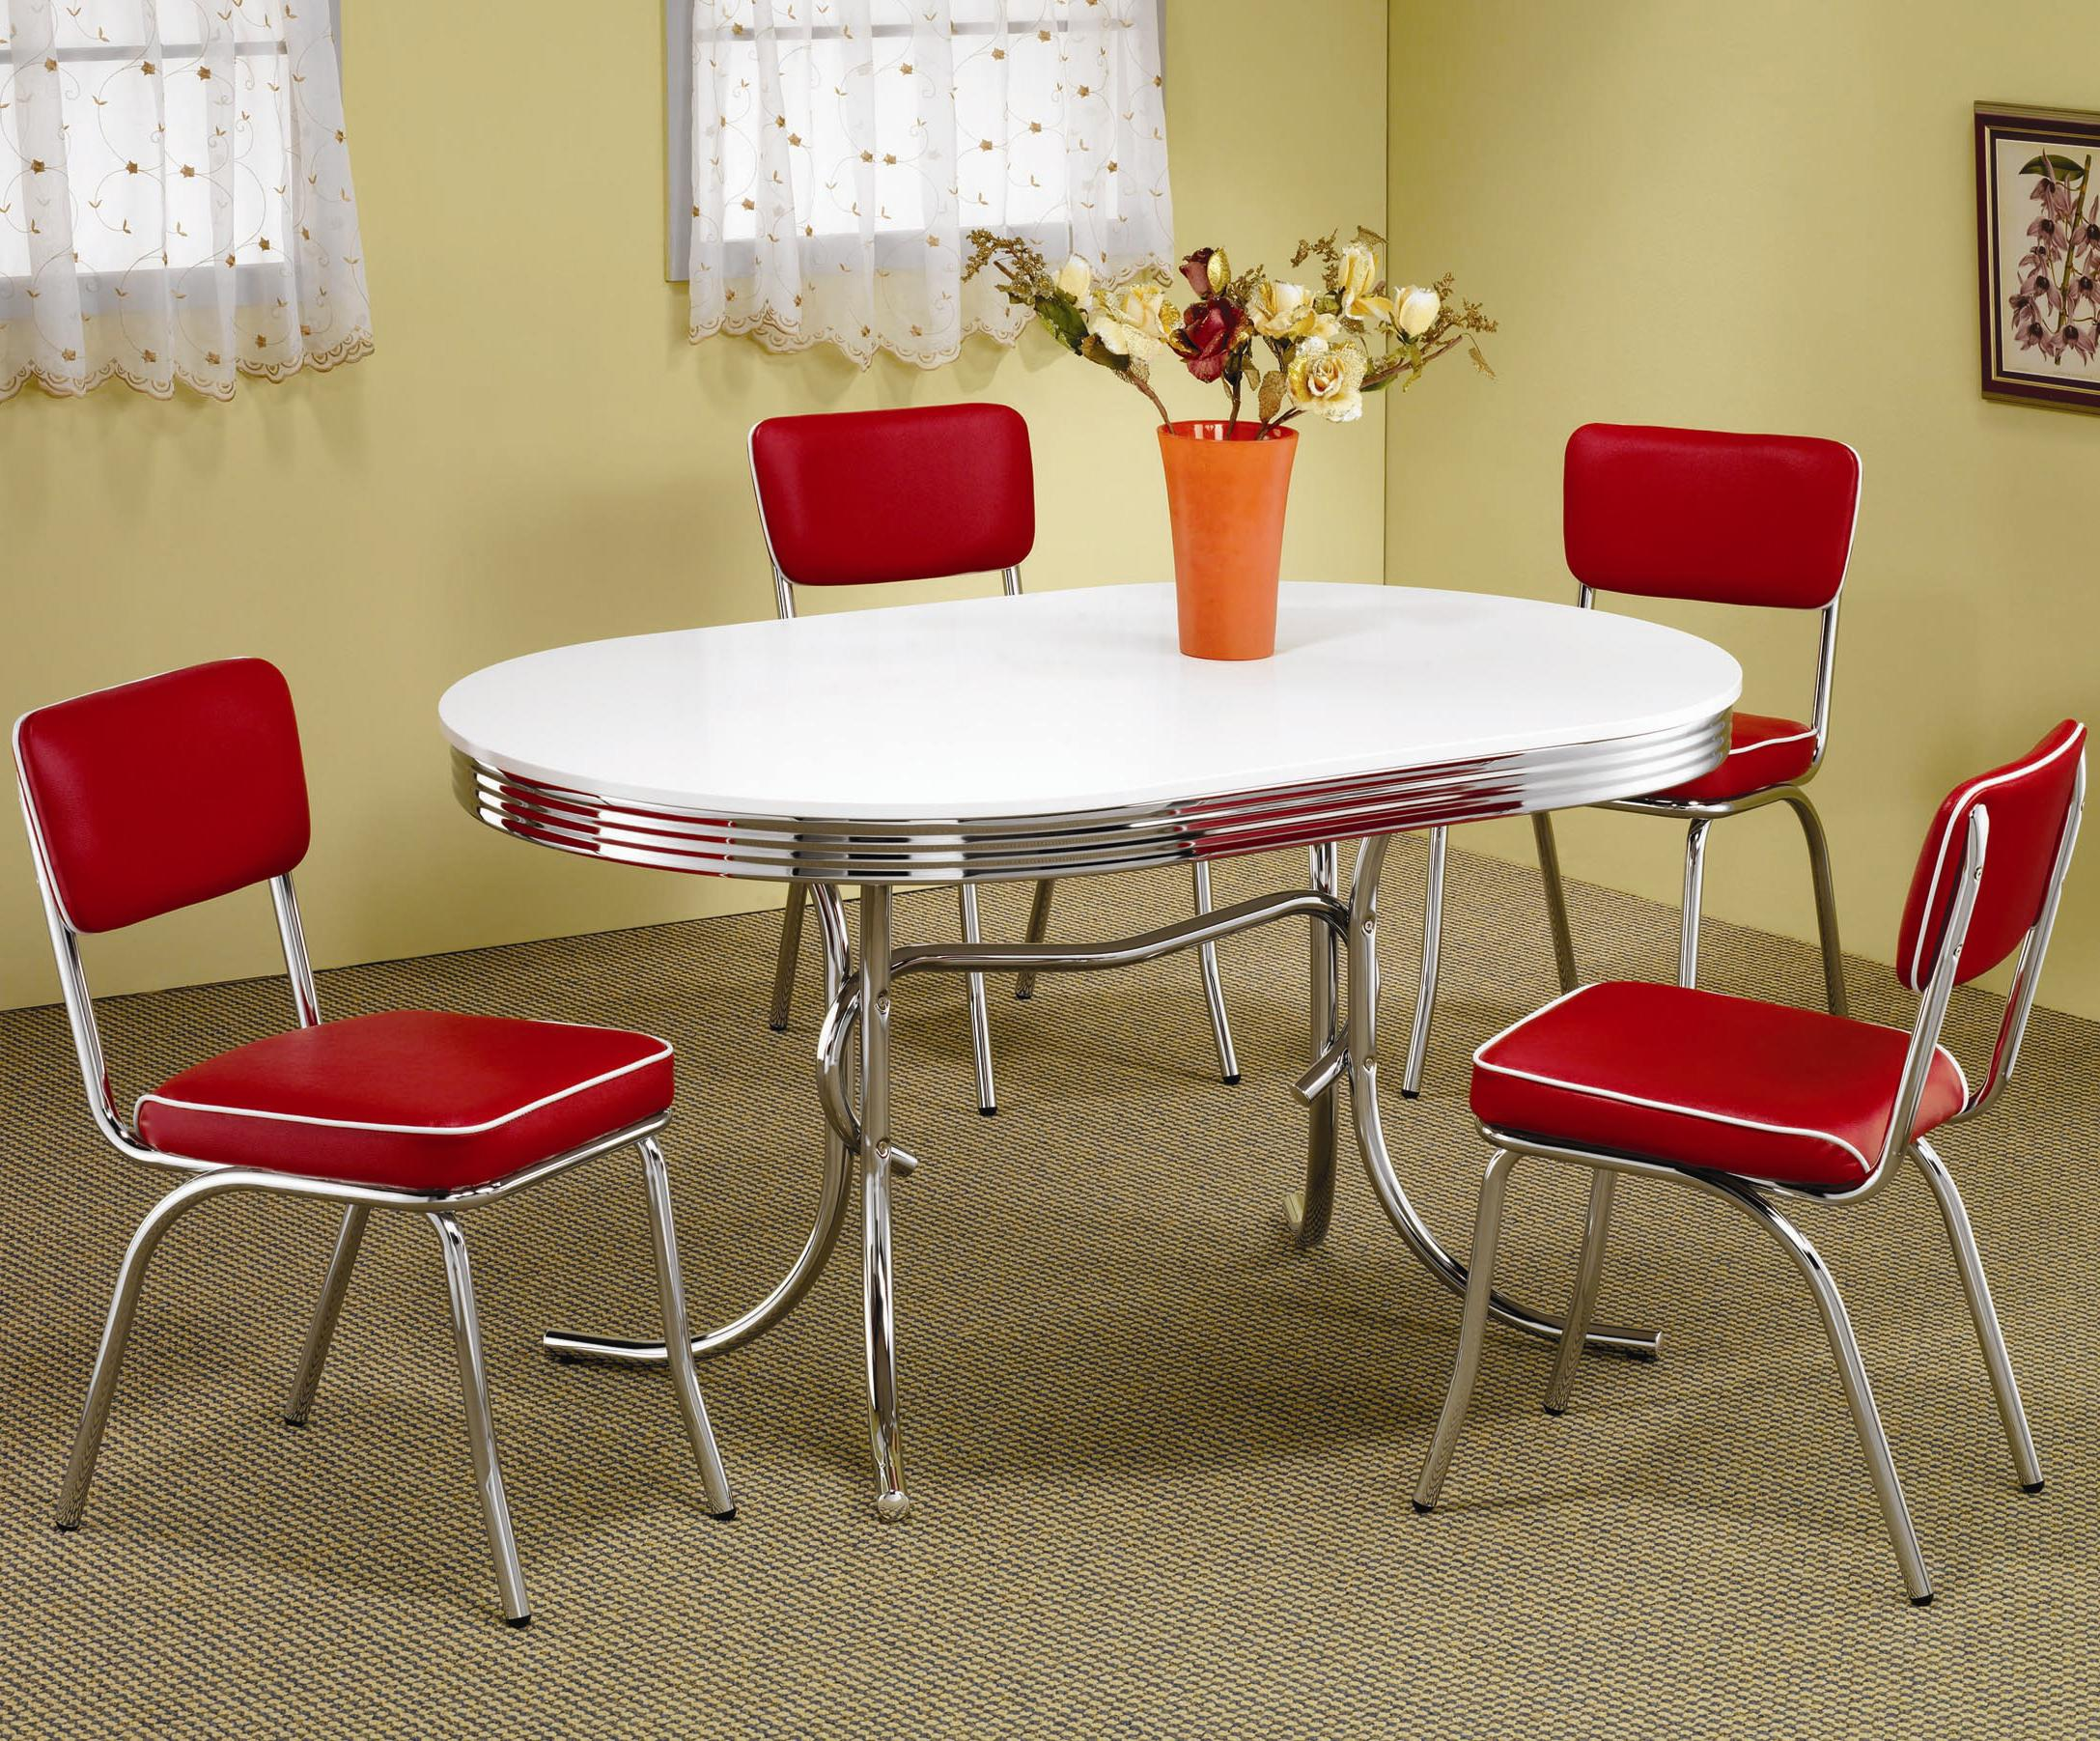 Coaster Cleveland 2065 Oval Dining Table Northeast Factory Direct Kitchen Tables Eastlake Westlake Mentor Medina Ohio